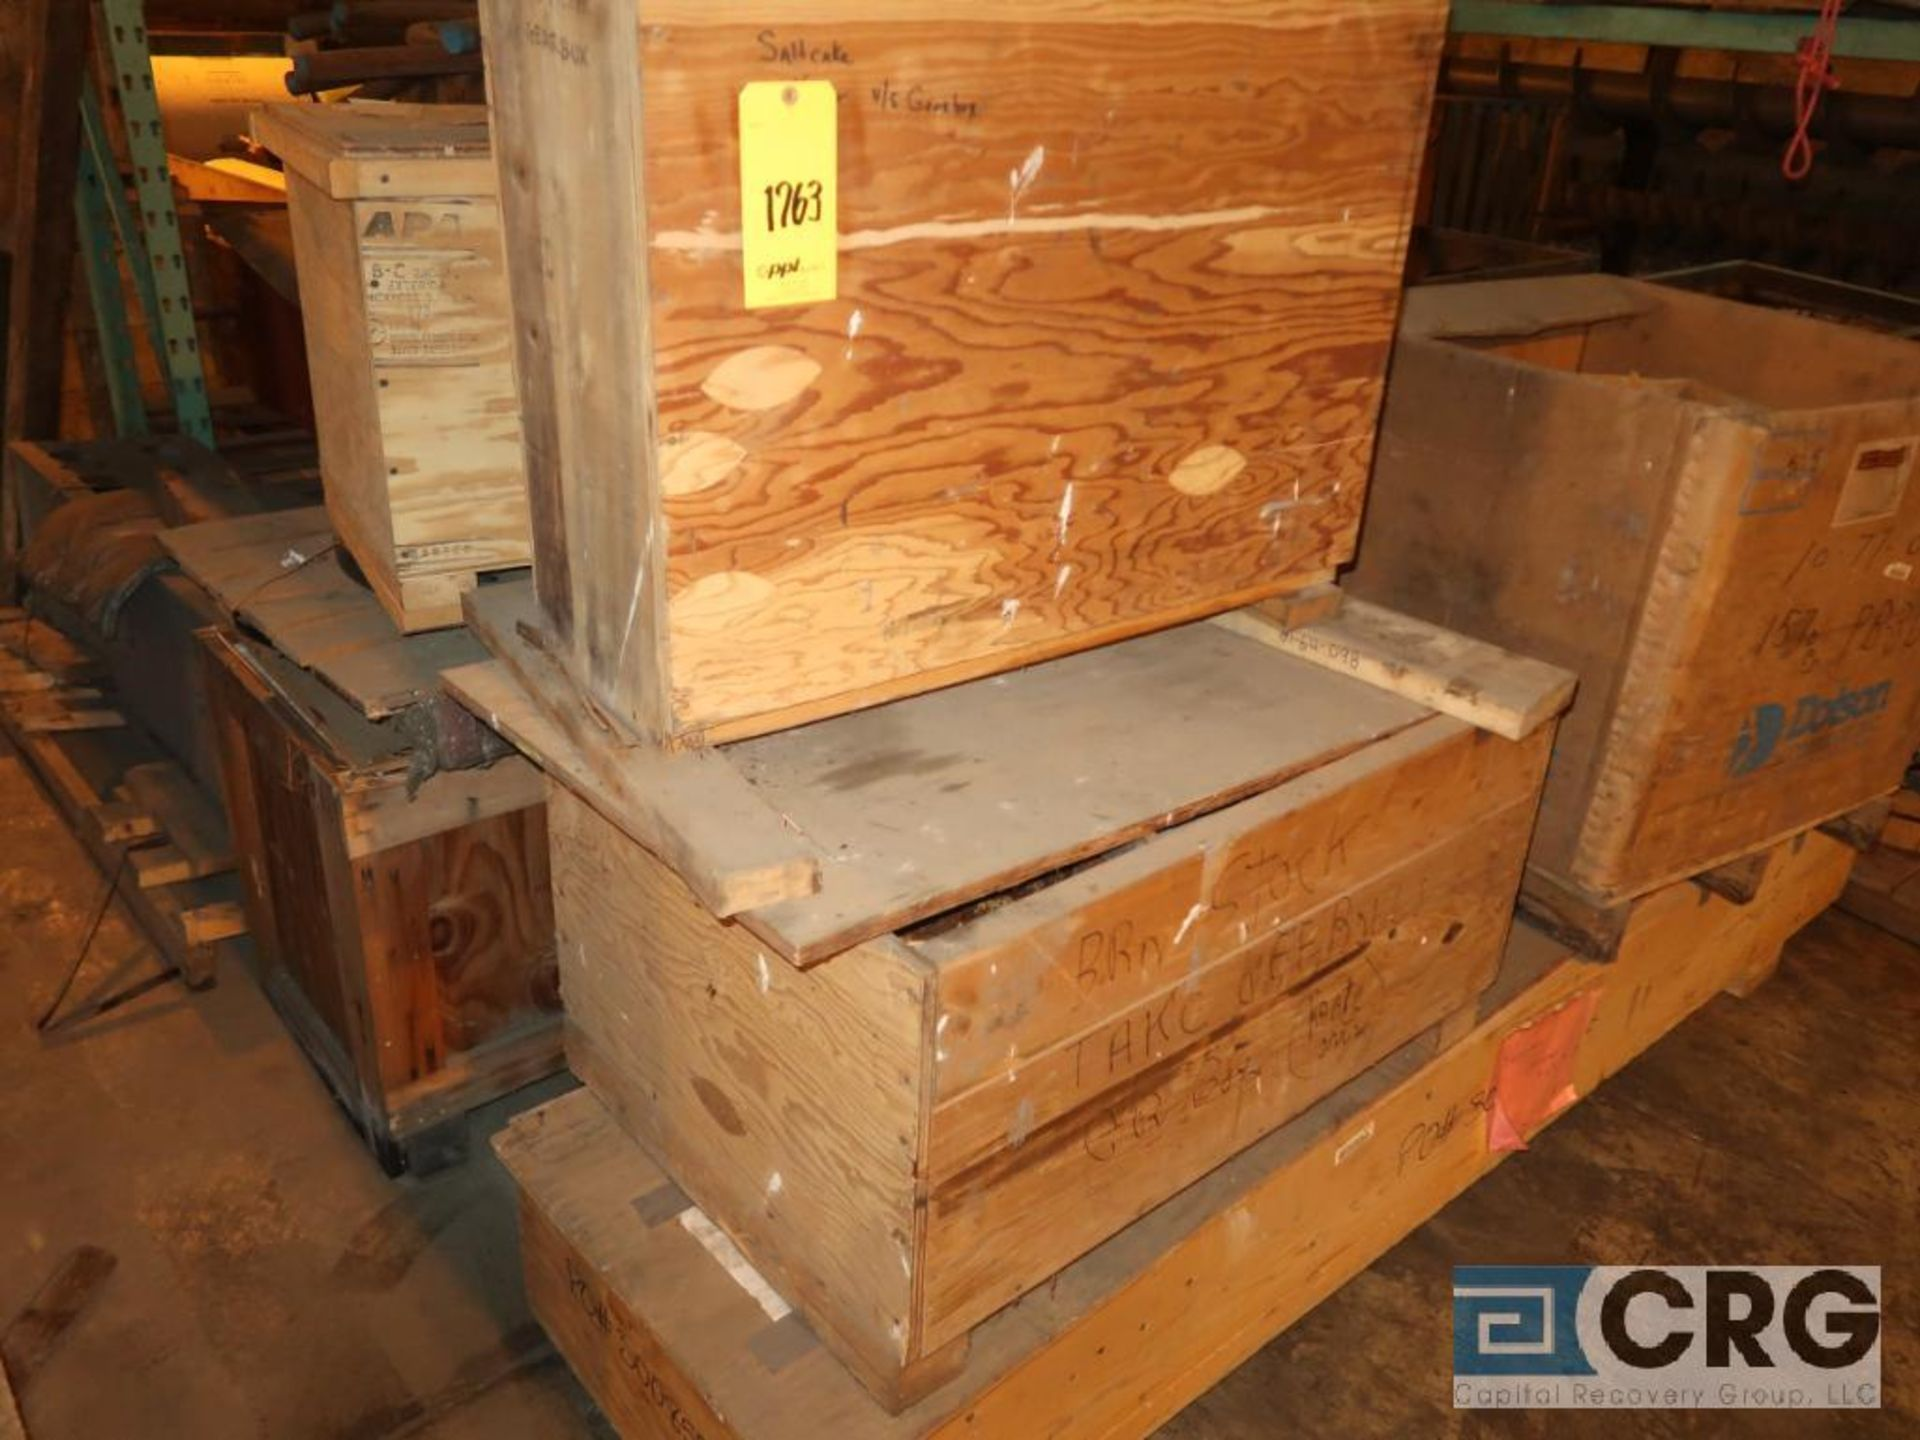 Lot of assorted parts including expansion joint, valves, fan blade, and rotors (Next Bay Cage Area) - Image 8 of 15